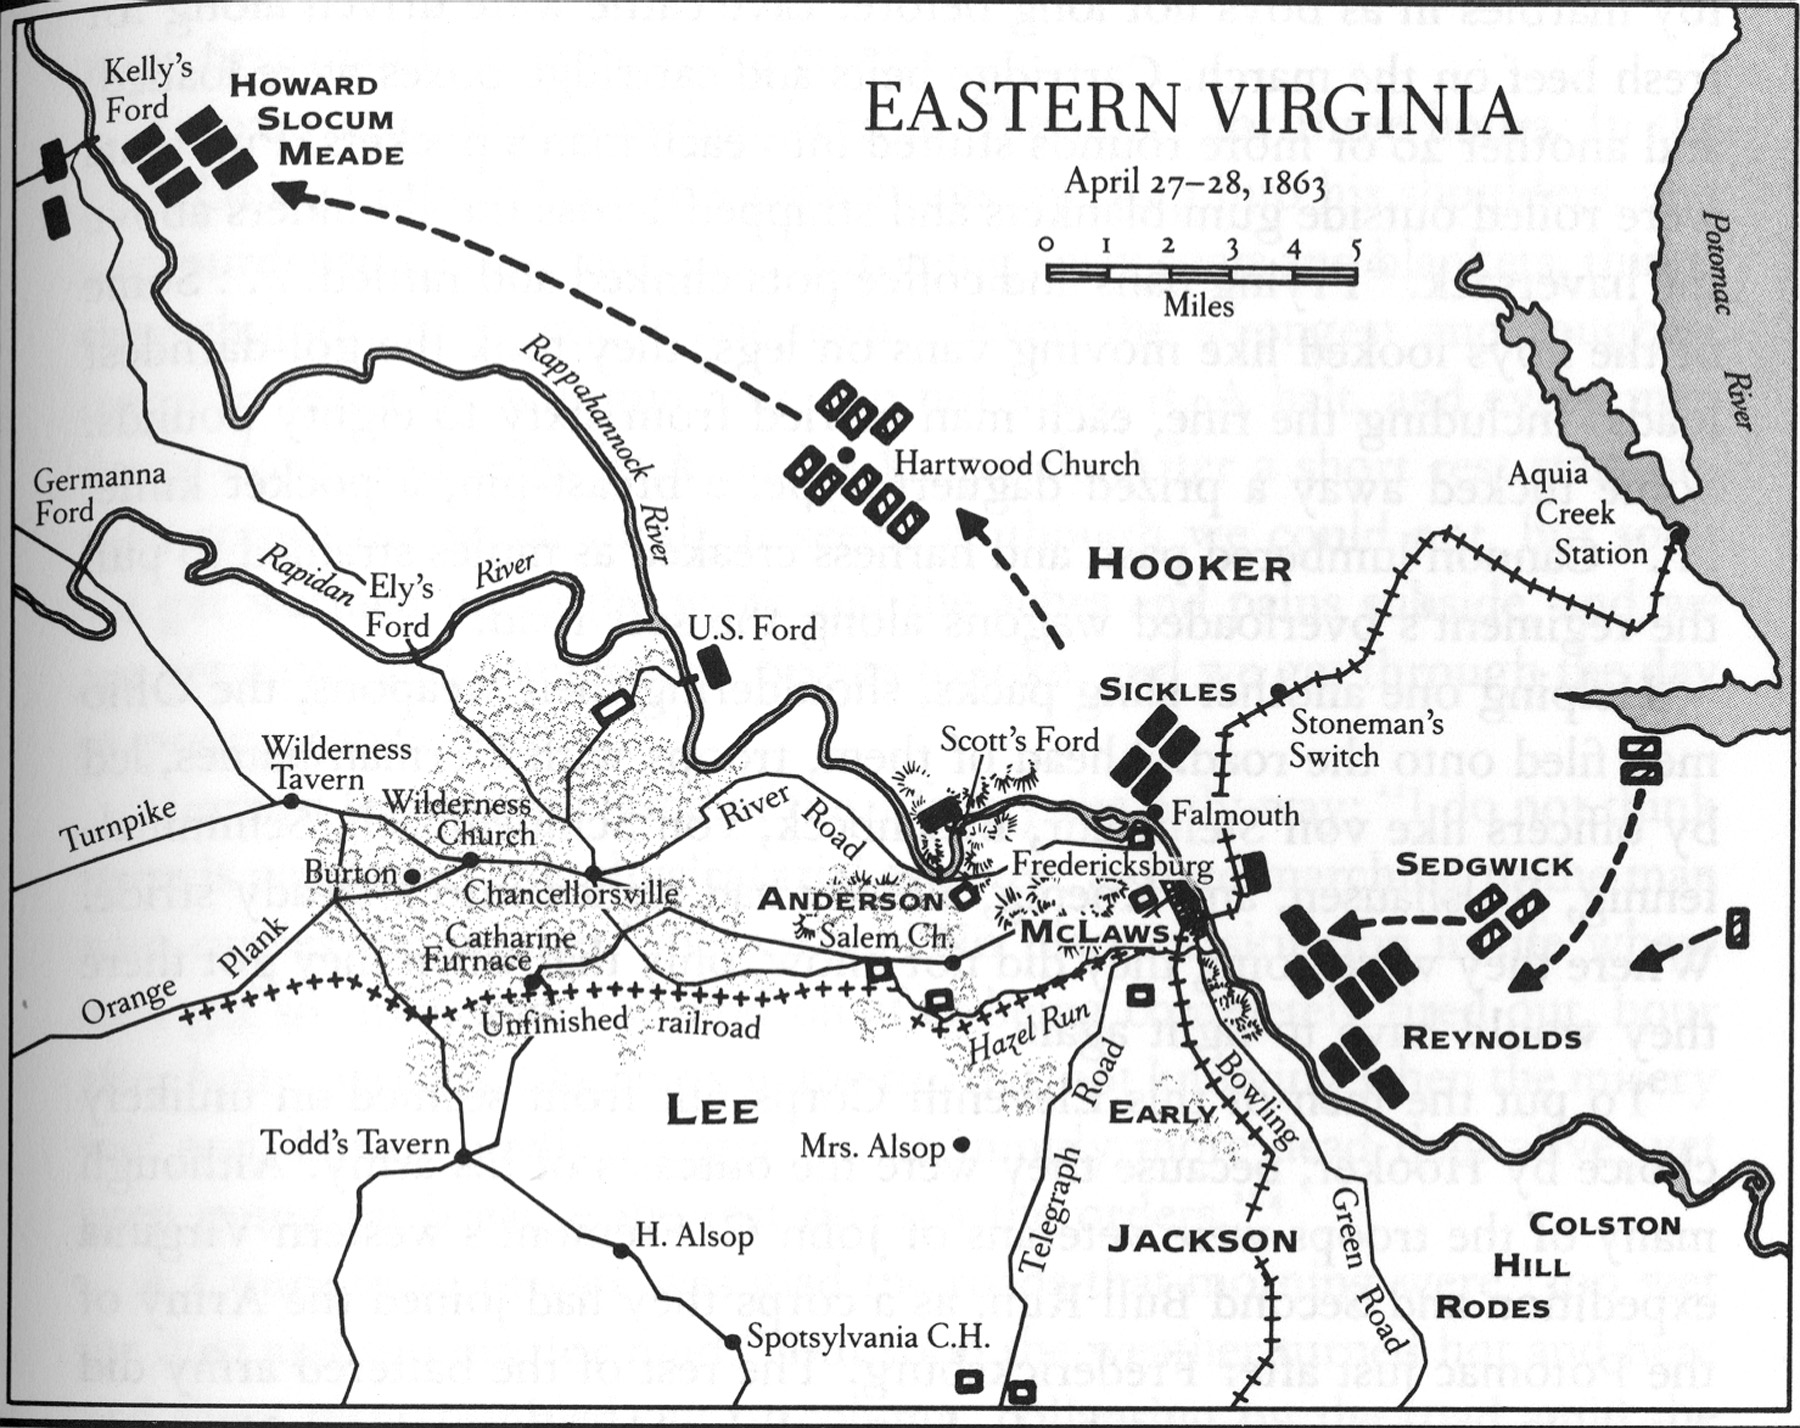 Map of Opening Movements at Chancellorsville